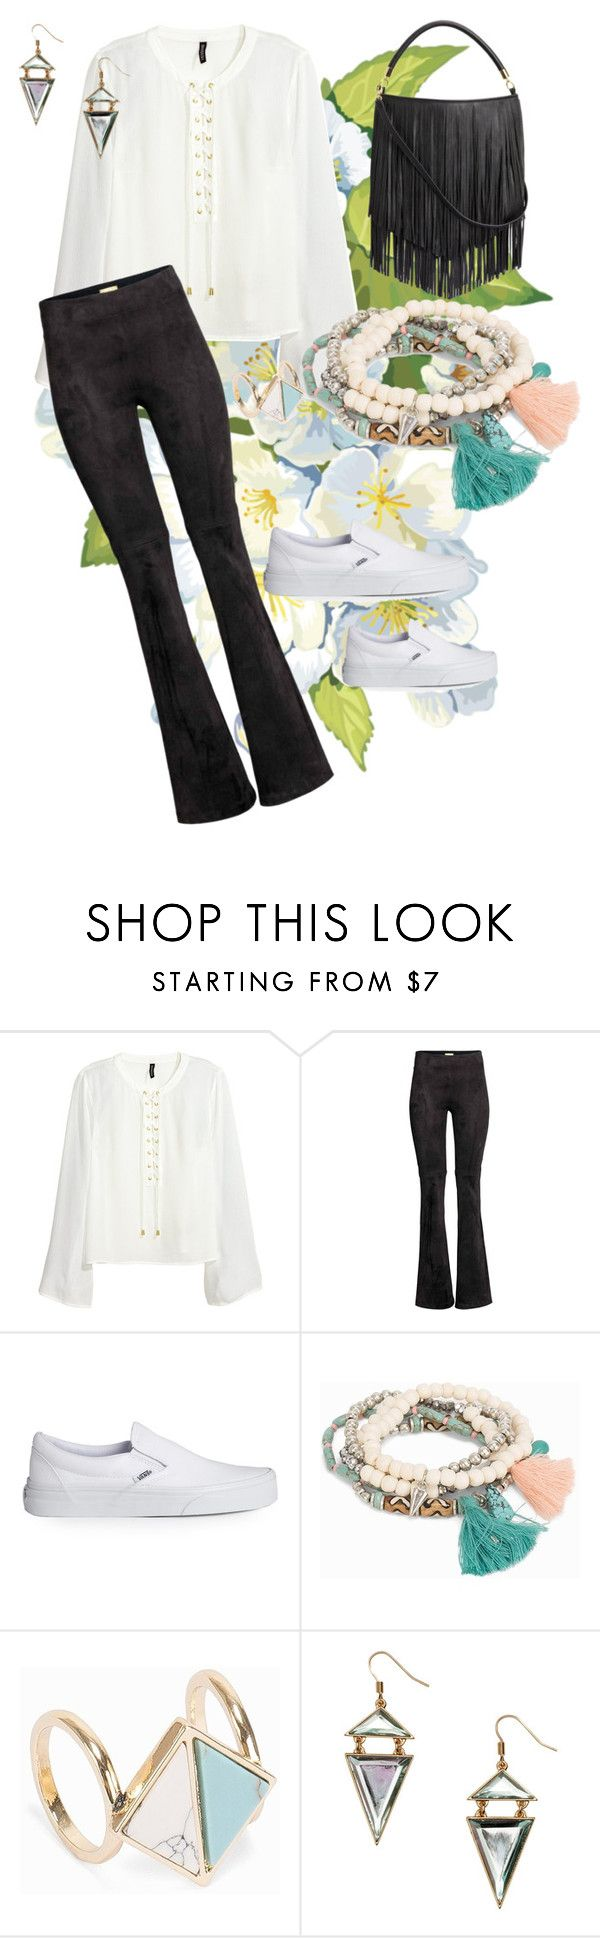 sb-16 by louisesandstroms on Polyvore featuring H&M and Vans